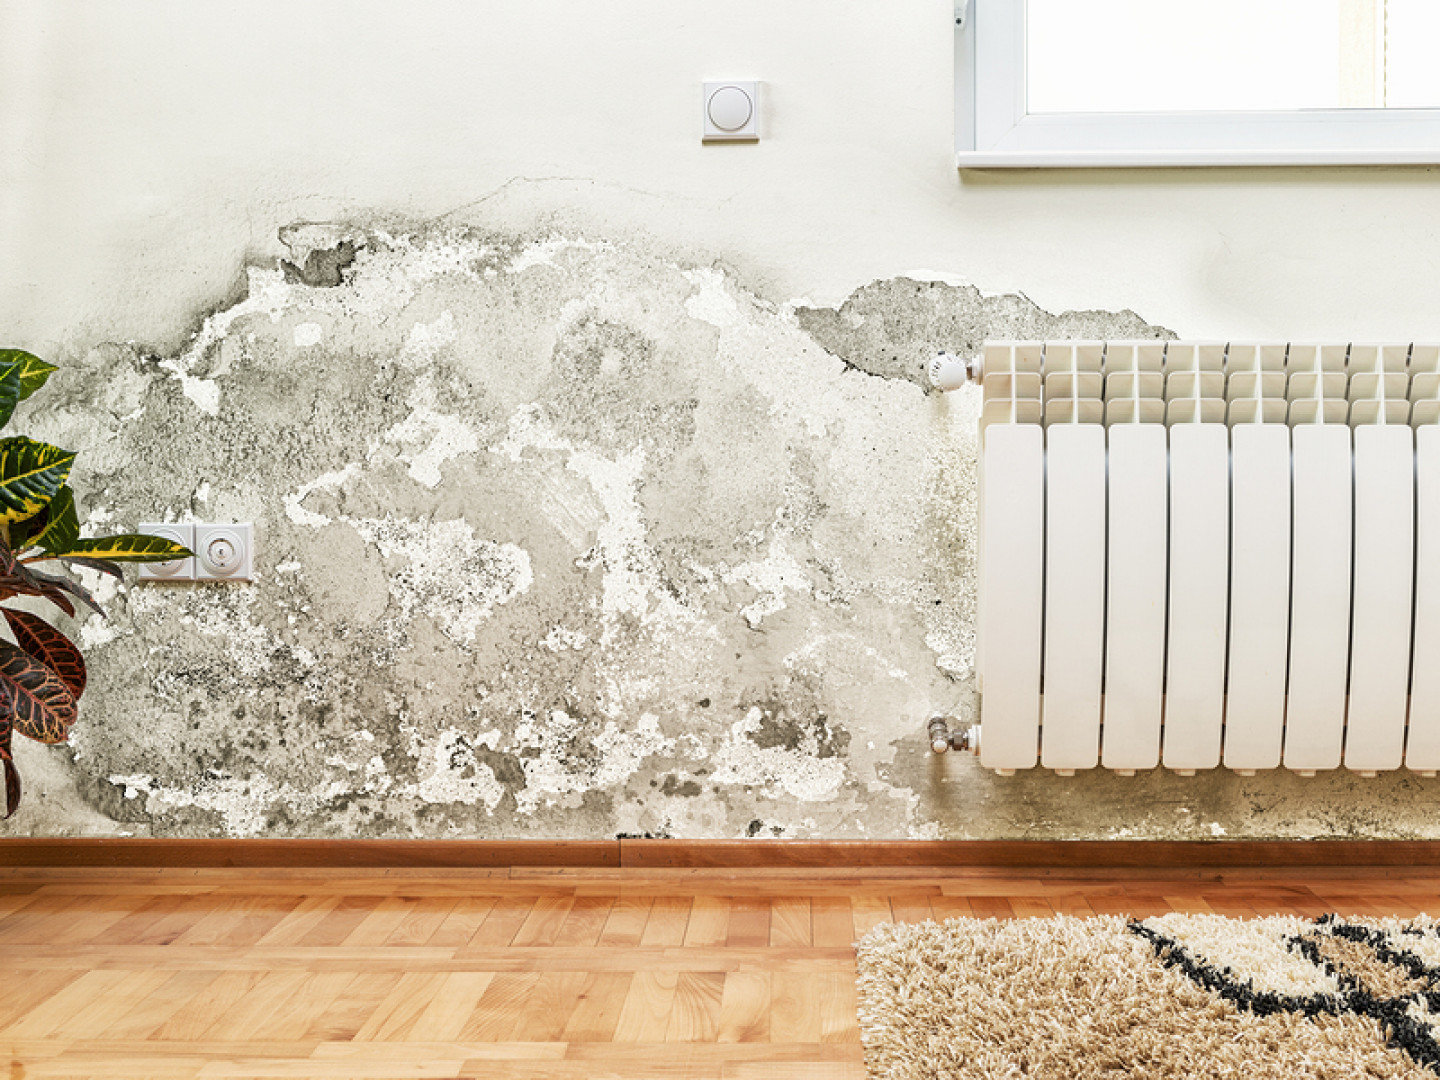 Restore Your Home after Water Damage